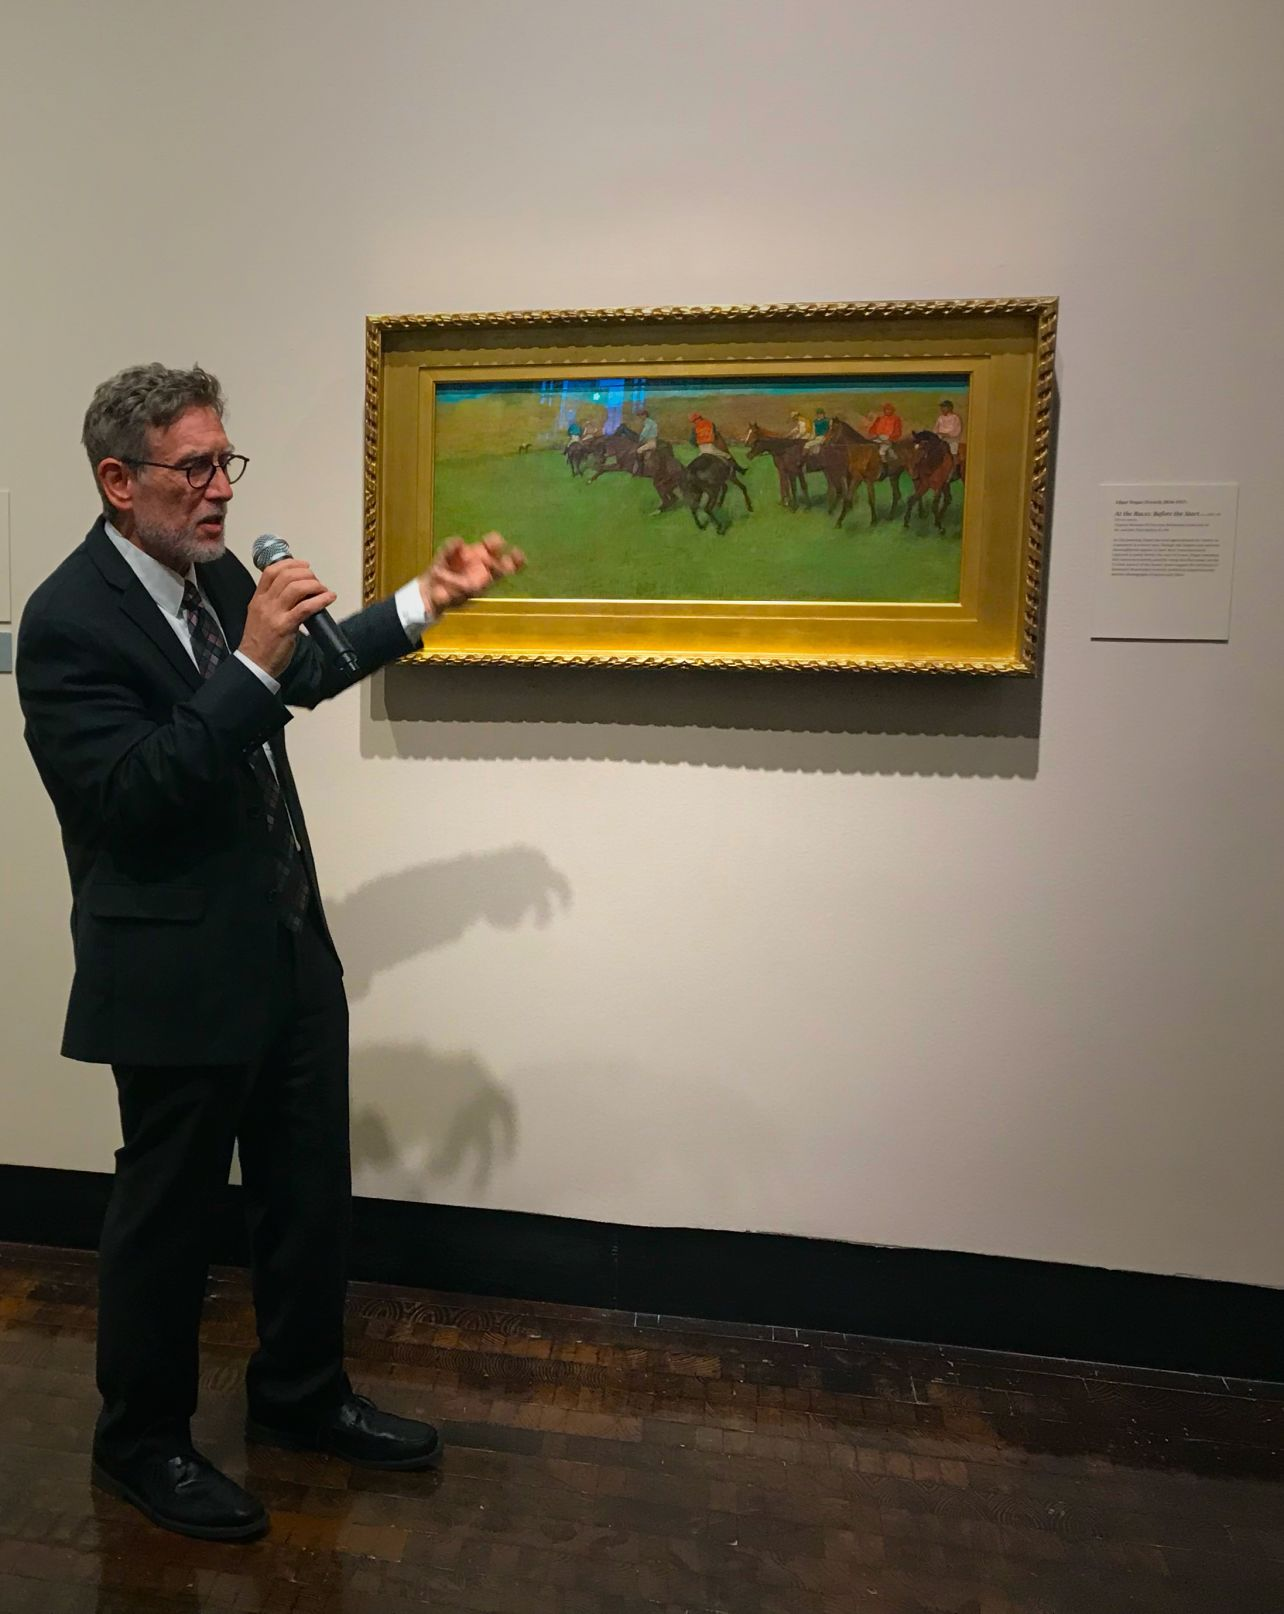 <p>Mark Scala, Chief Curator at the Frist Art Museum, leads a tour of 'Van Gogh, Monet, Degas, and Their Times: The Mellon Collection of French Art from the Virginia Museum of Fine Arts'</p>